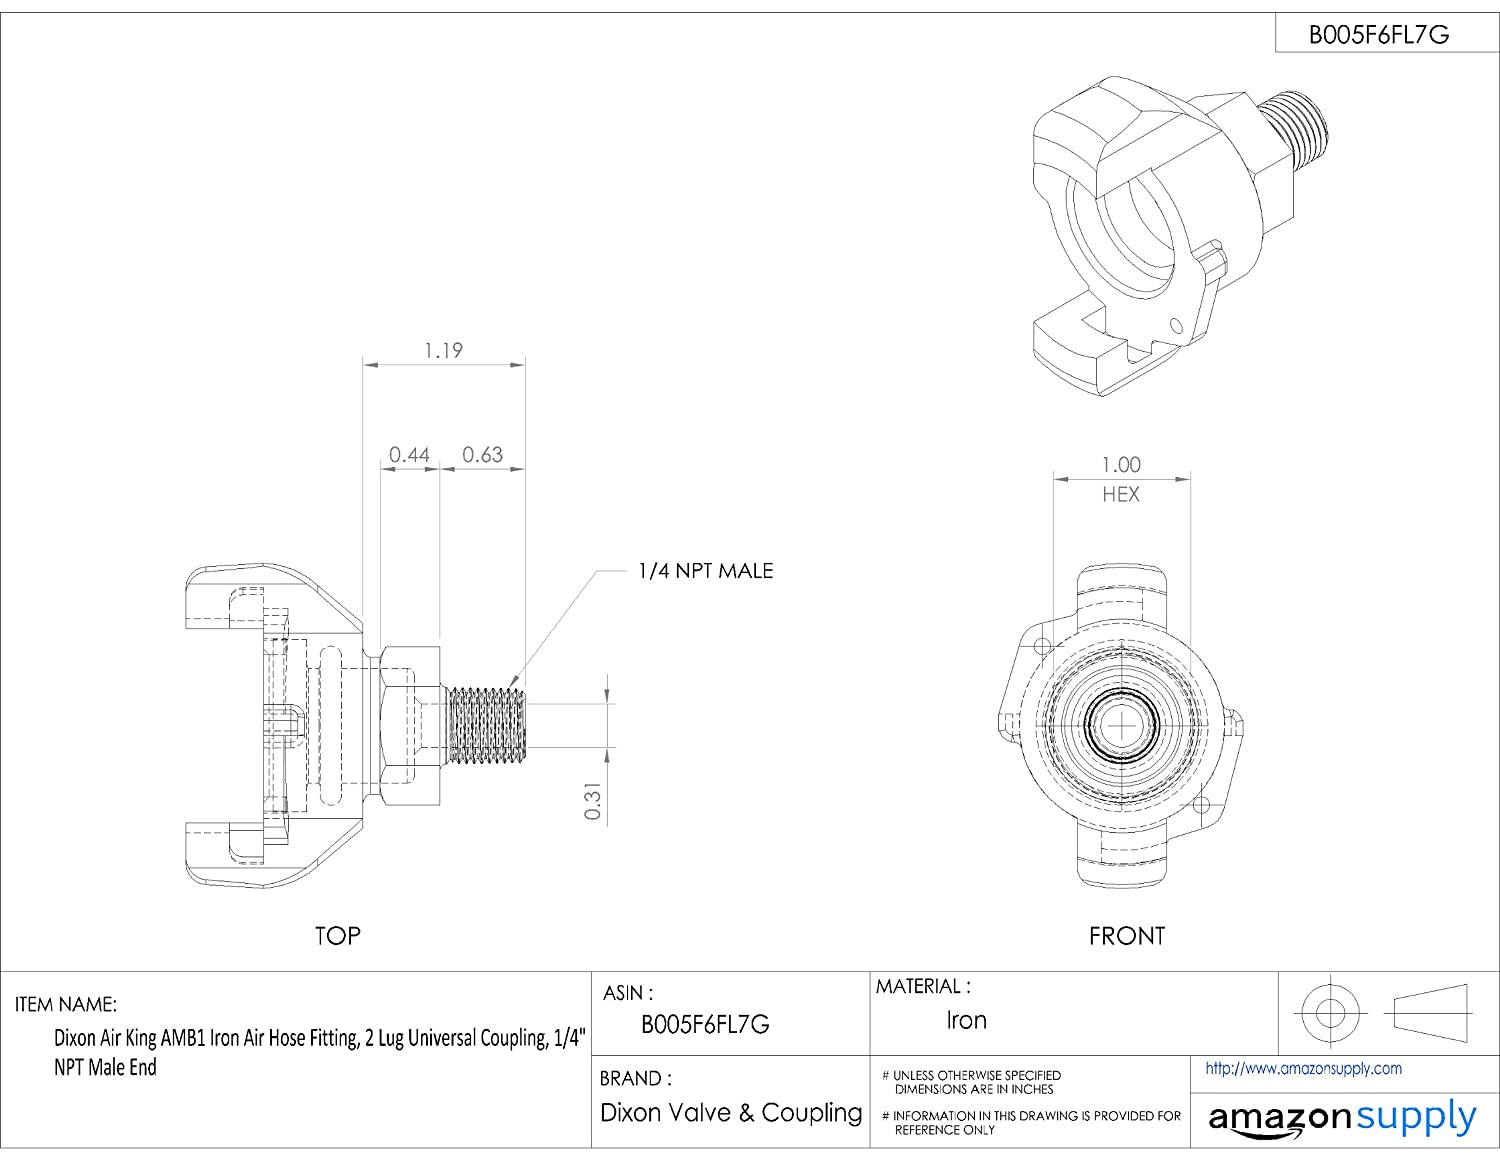 Dixon Air King Am12 Iron Hose Fitting 2 Lug Universal Coupling Chicago Pneumatic Wiring Diagram 1 Npt Male End Industrial Scientific